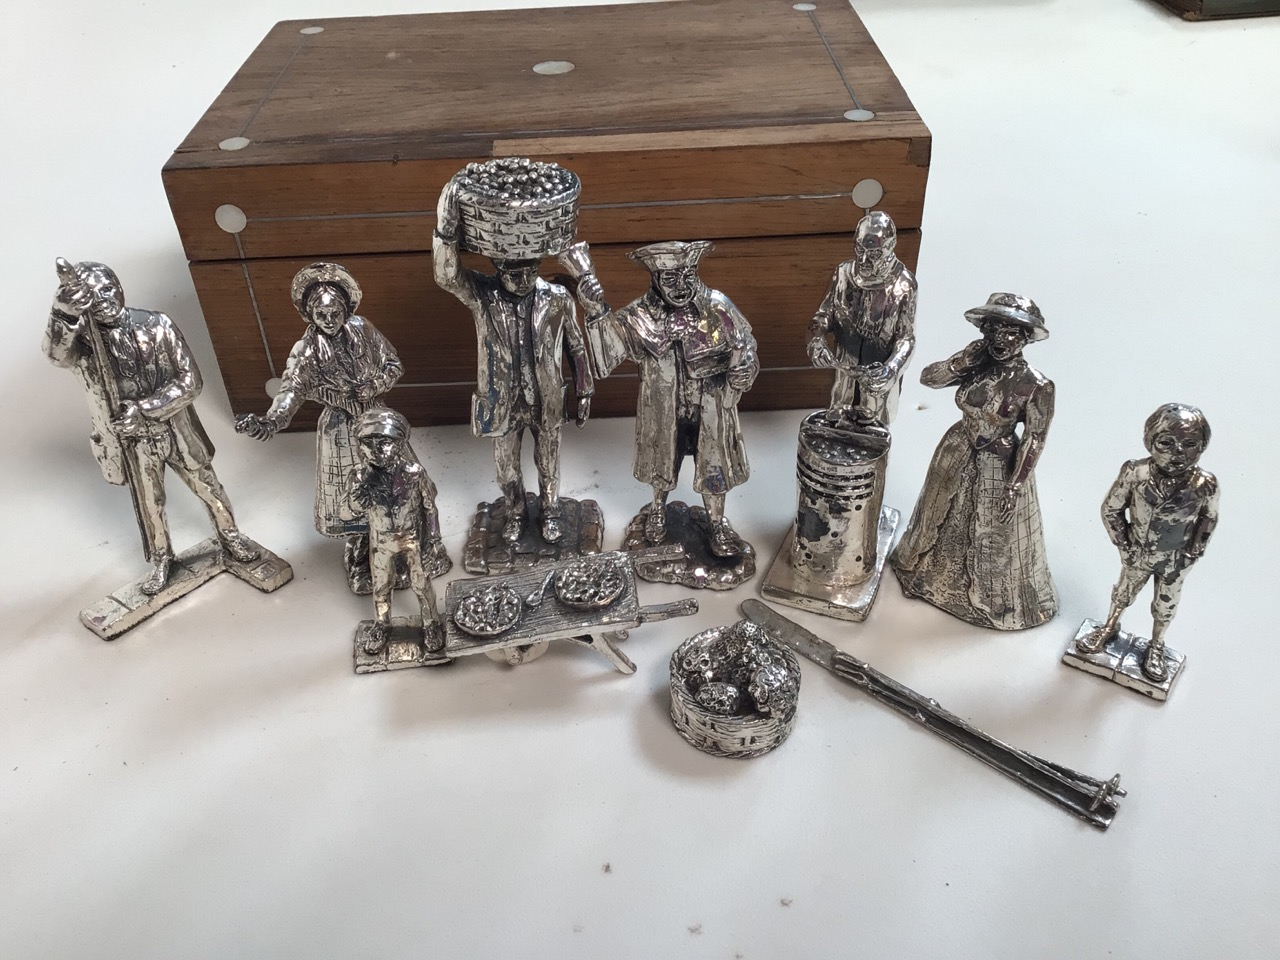 Eleven silvered figures and a wooden box with mother of pearl inlay. - Image 2 of 4